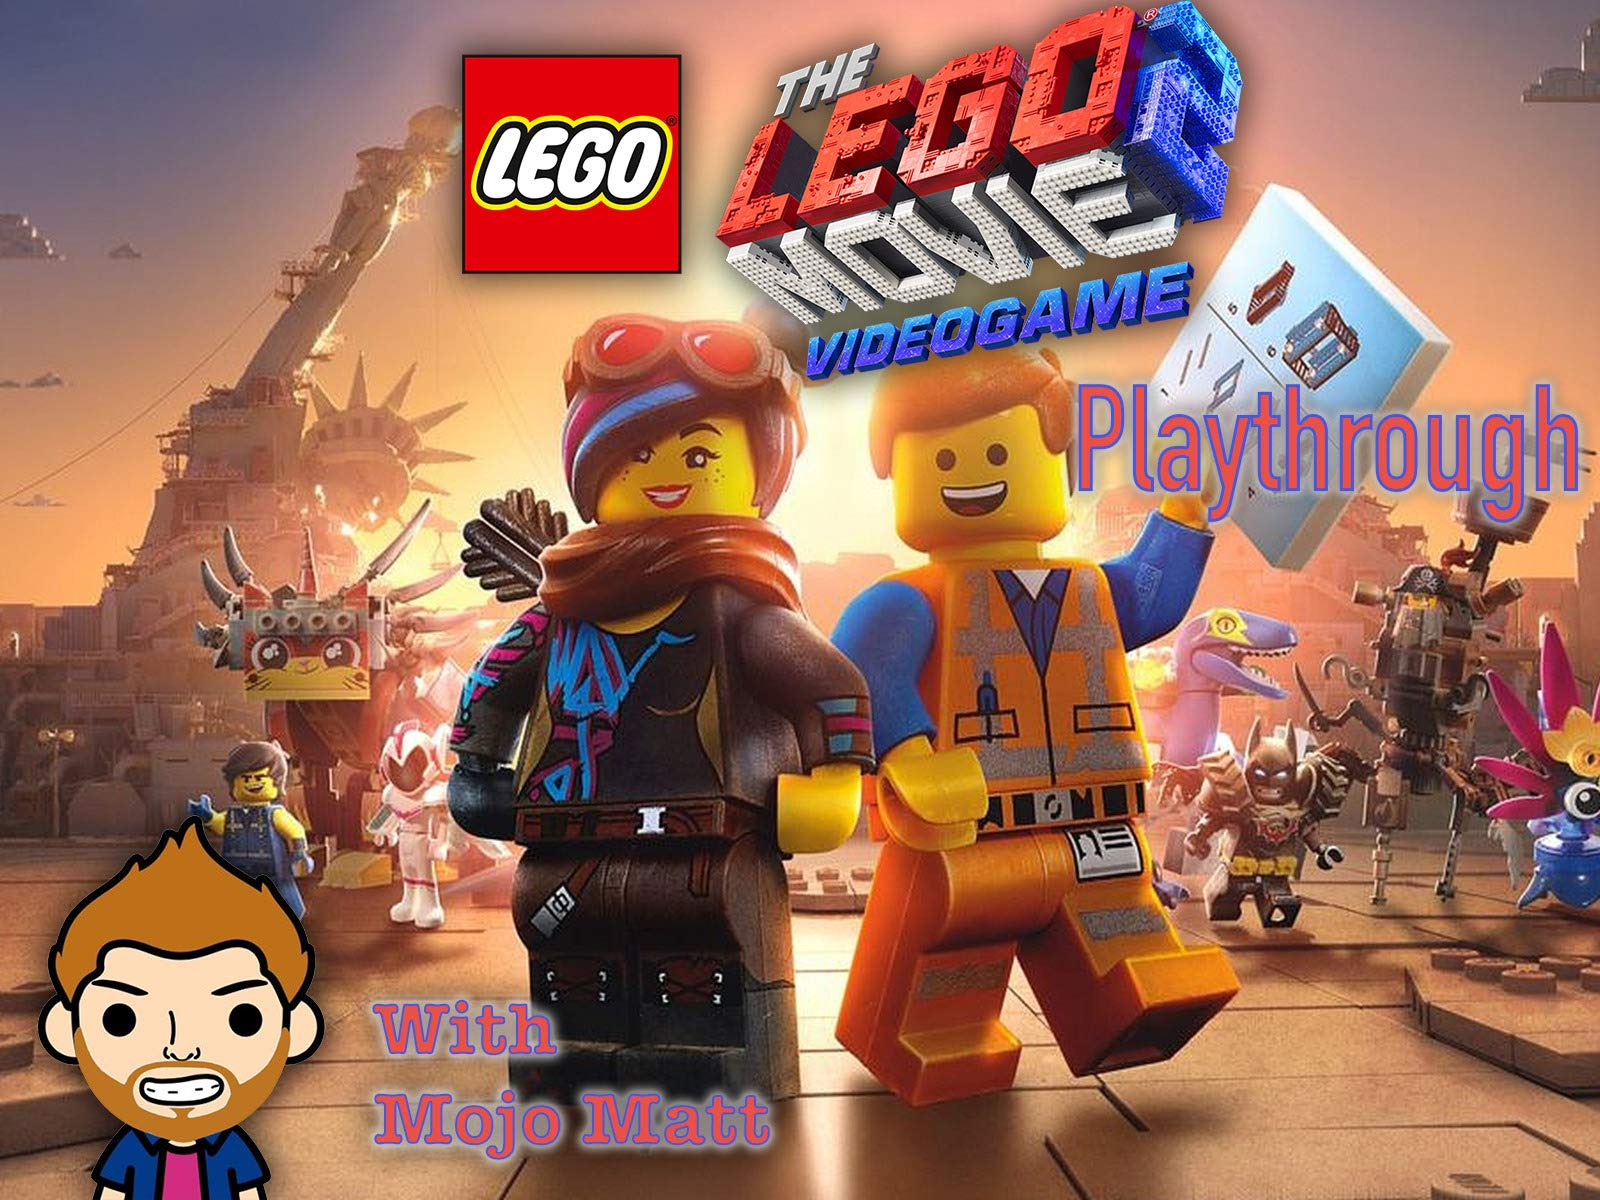 The Lego Movie 2 Video Game Playthrough With Mojo Matt on Amazon Prime Instant Video UK